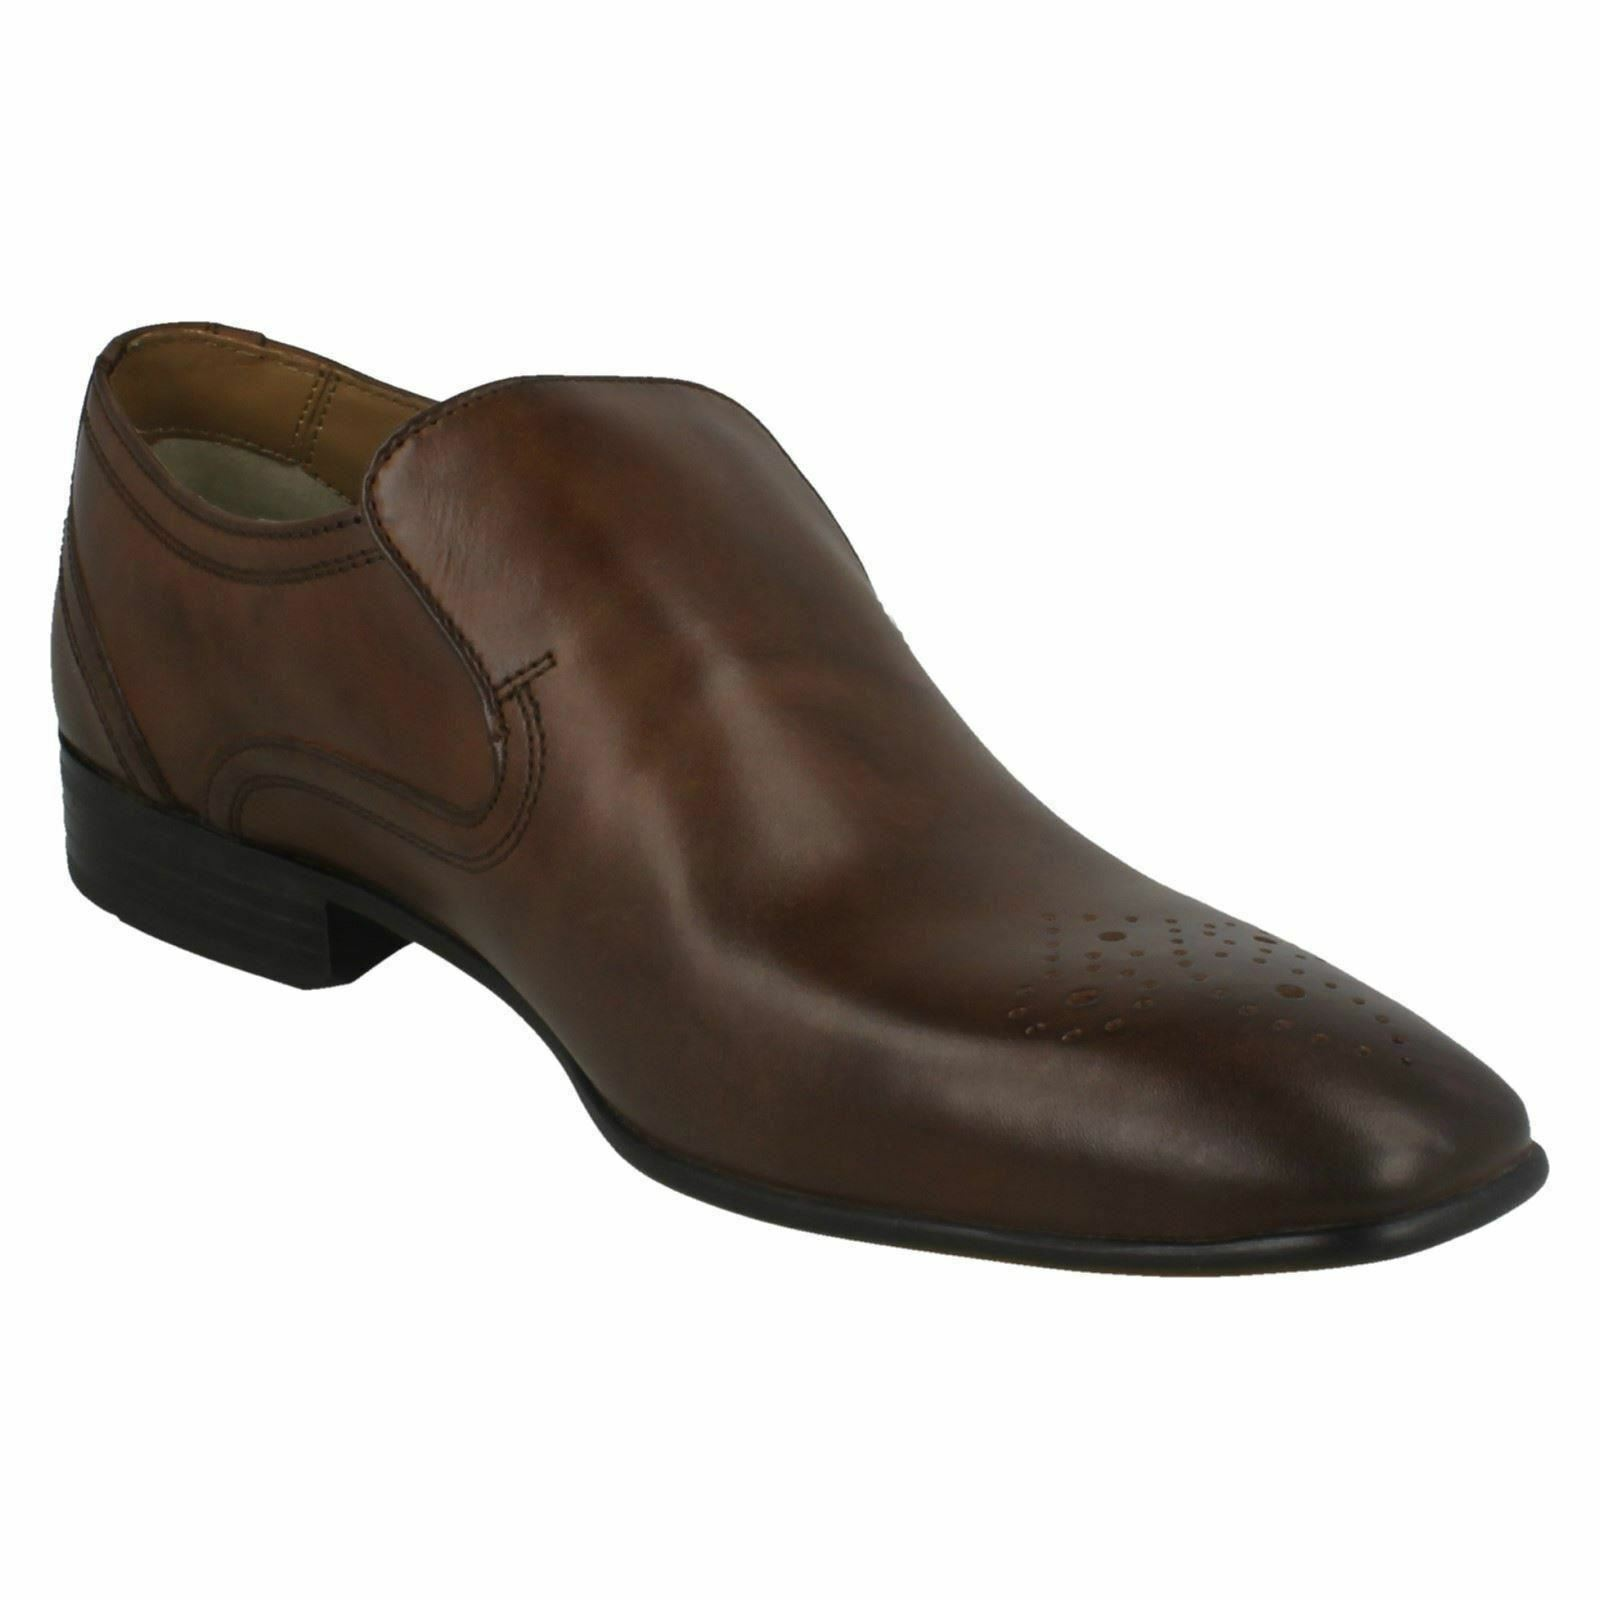 Mens Base London Era MTO Waxy Brown Or Black Leather Smart Slip On Shoes